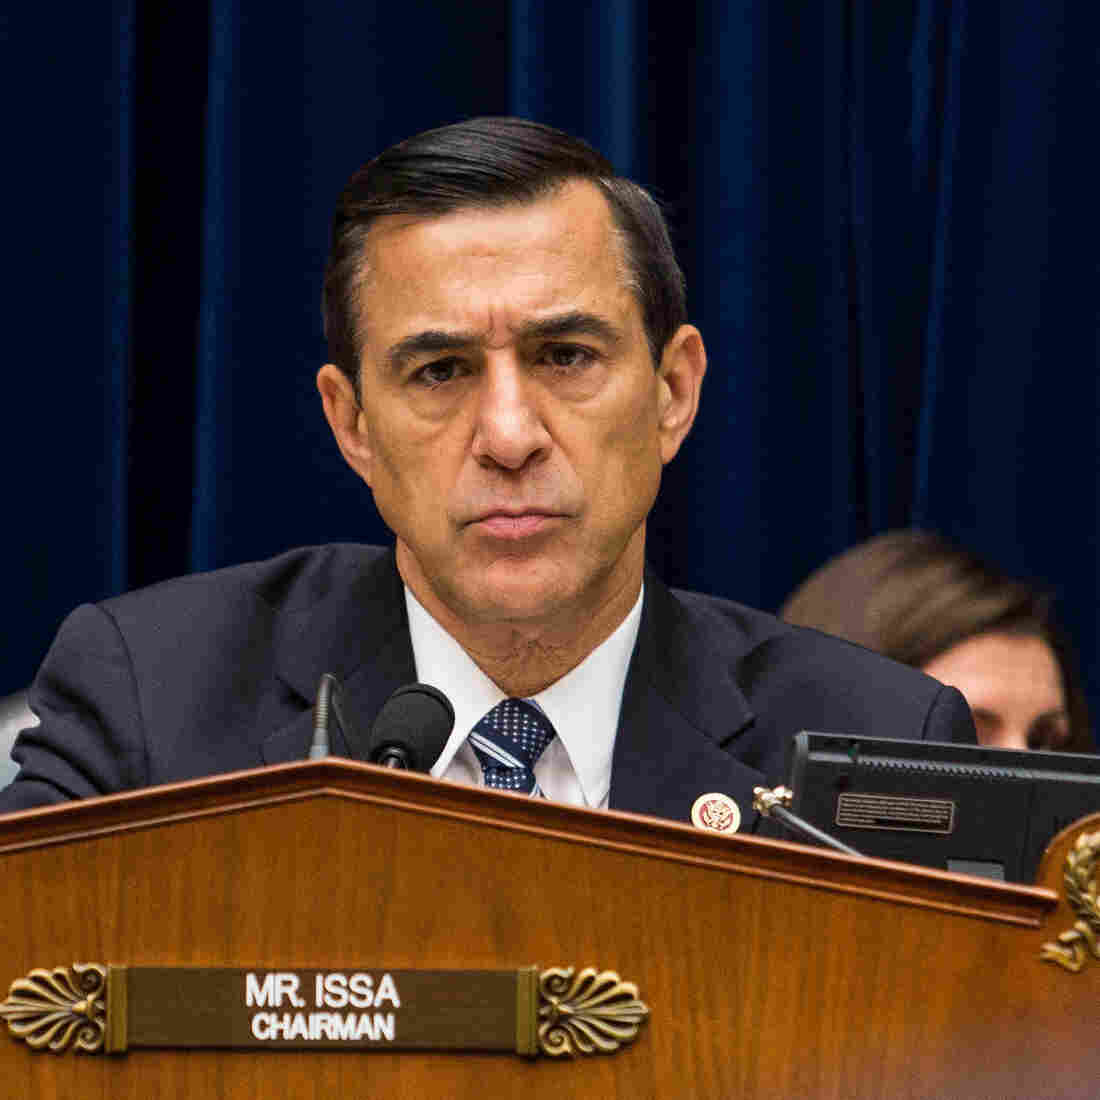 On Wednesday, Republican Rep. Darrell Issa's House Oversight and Government Reform Committee, finally got its turn to pummel the Obamacare rollout. The photo is from a Benghazi hearing in September 2013.